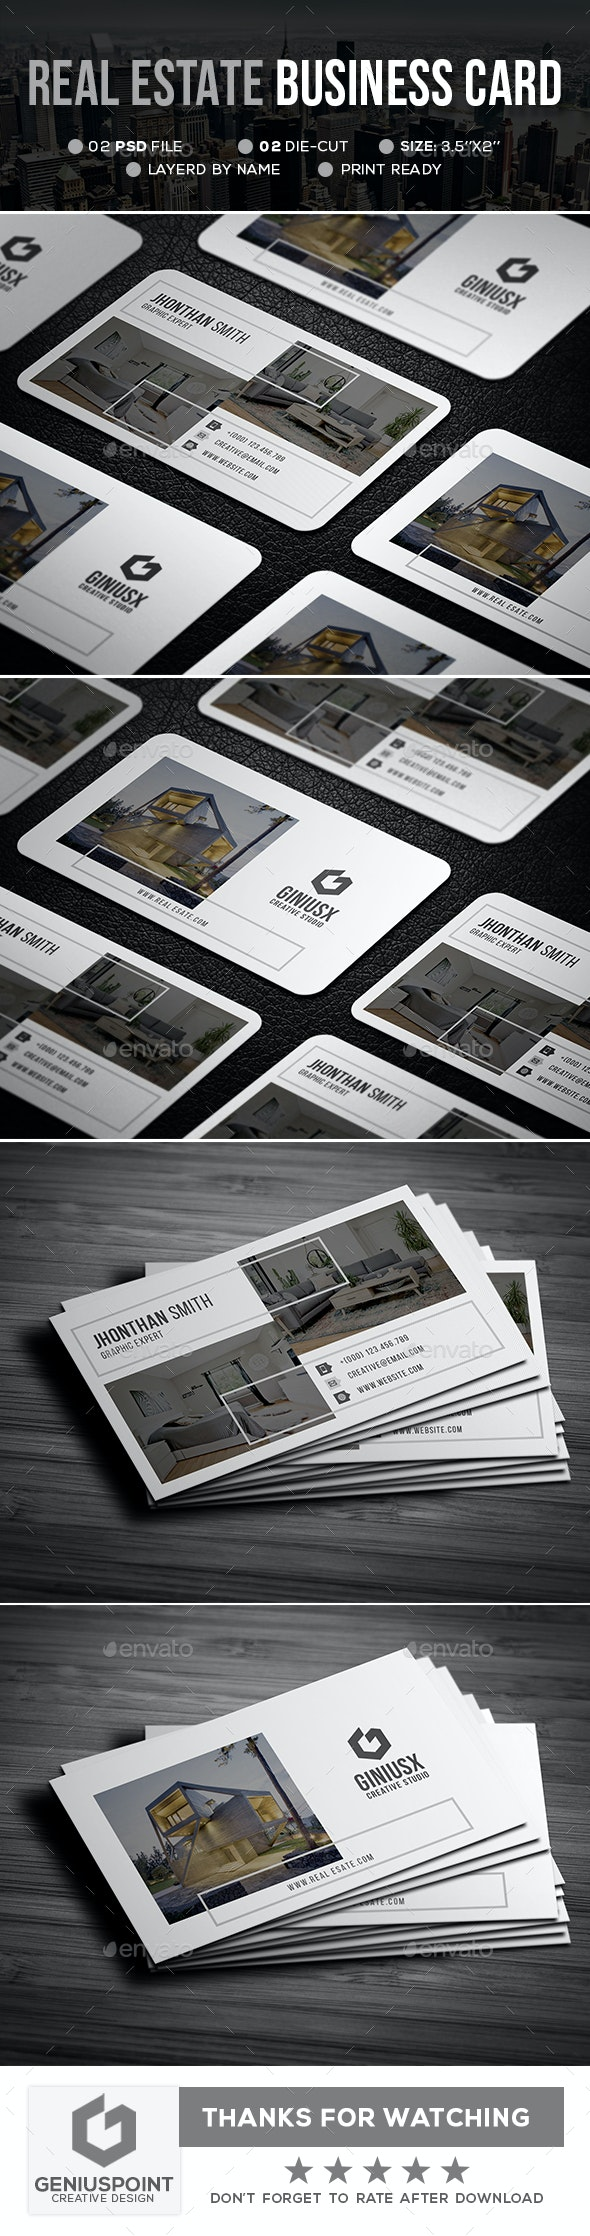 Real Estate Business Card - Business Cards Print Templates